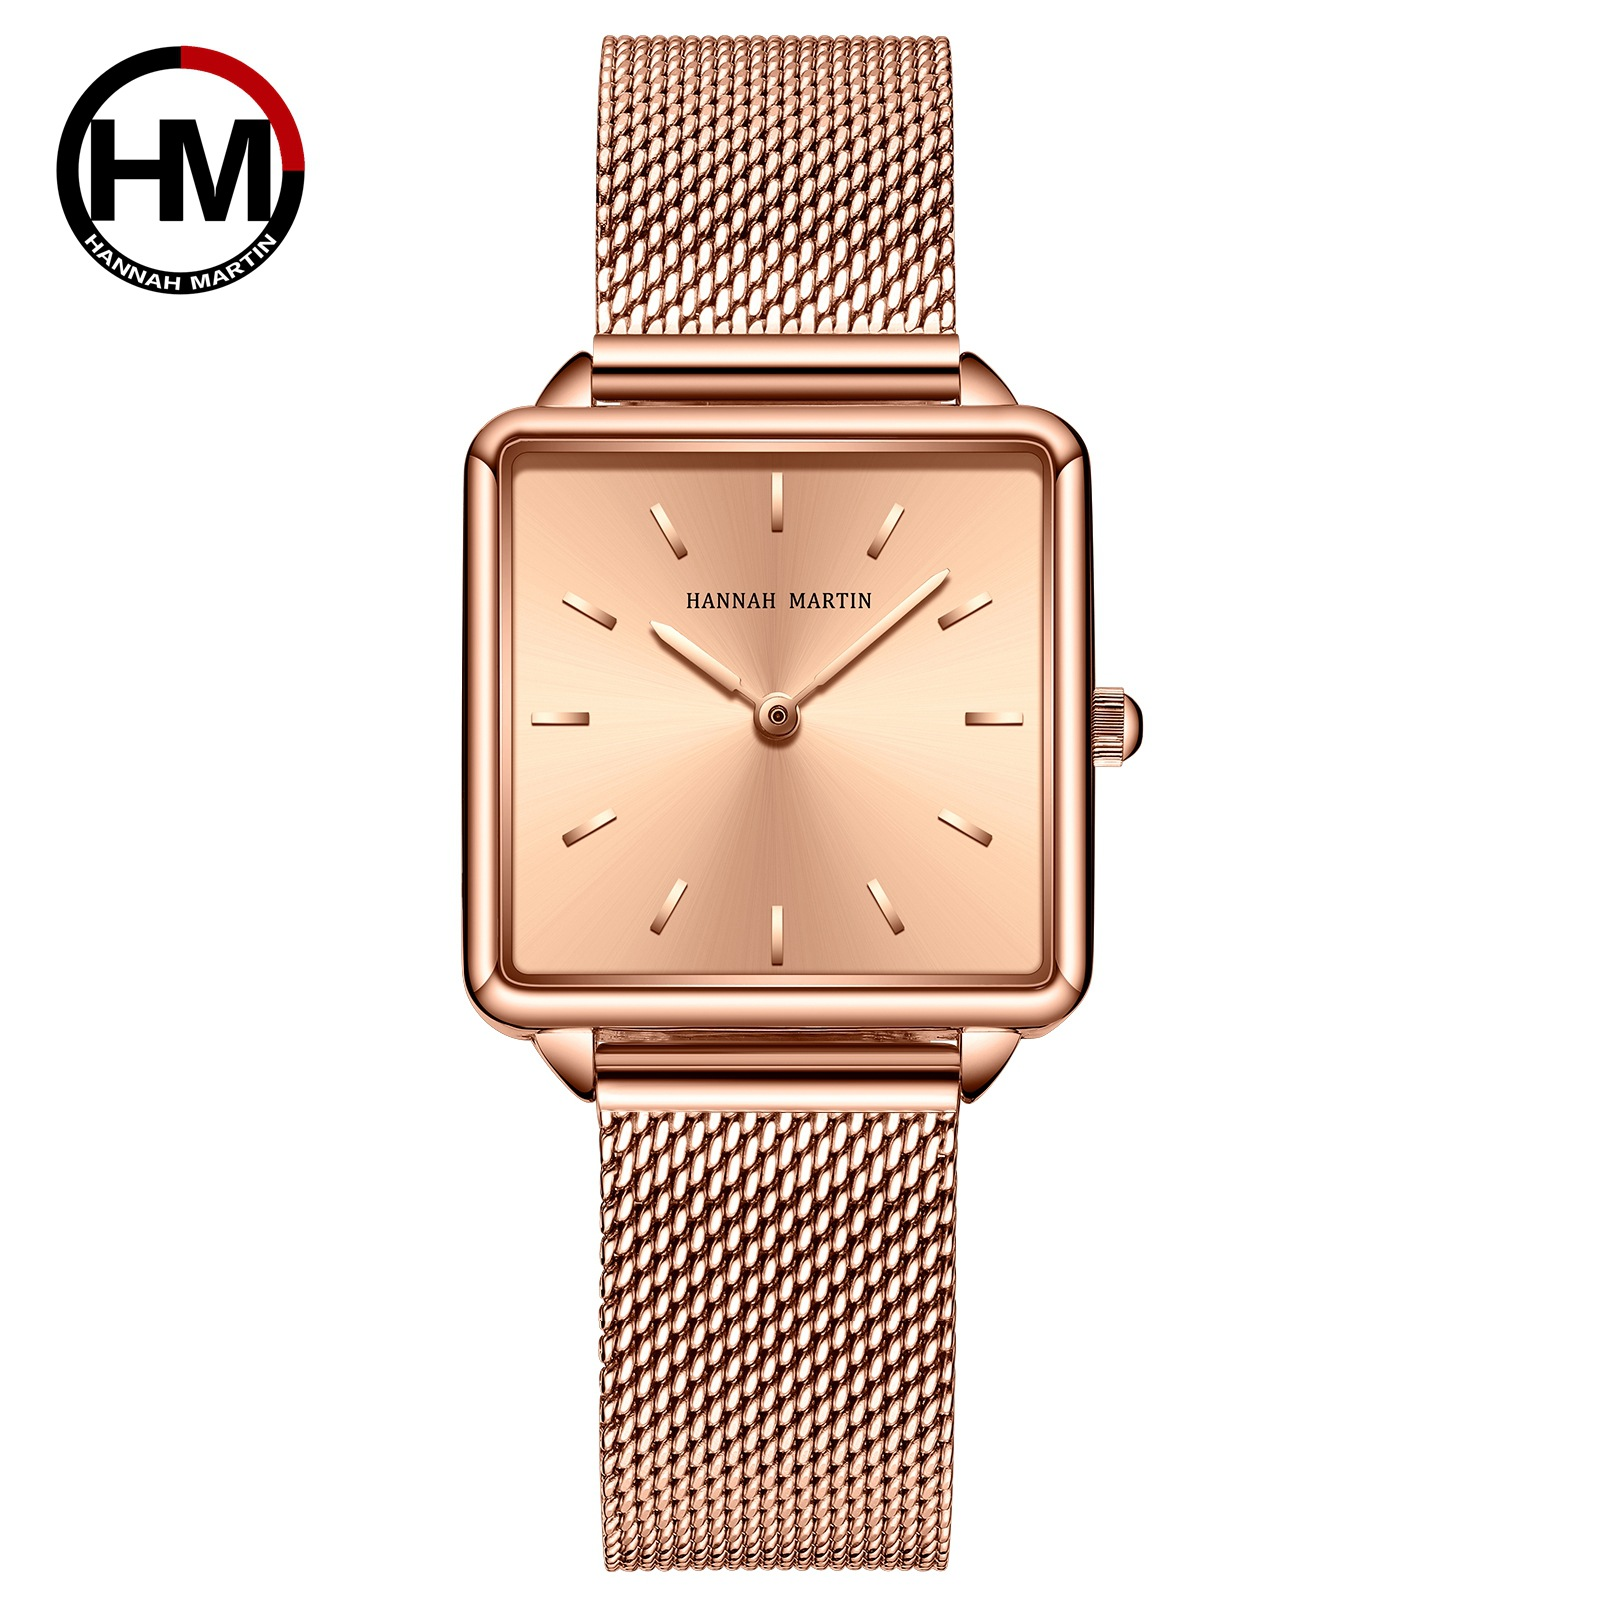 Hannah Martin Japan Movement Women Rose Gold Watches Simple Fashion Casual Watch Luxury Ladies Square Watch Relogio Feminino